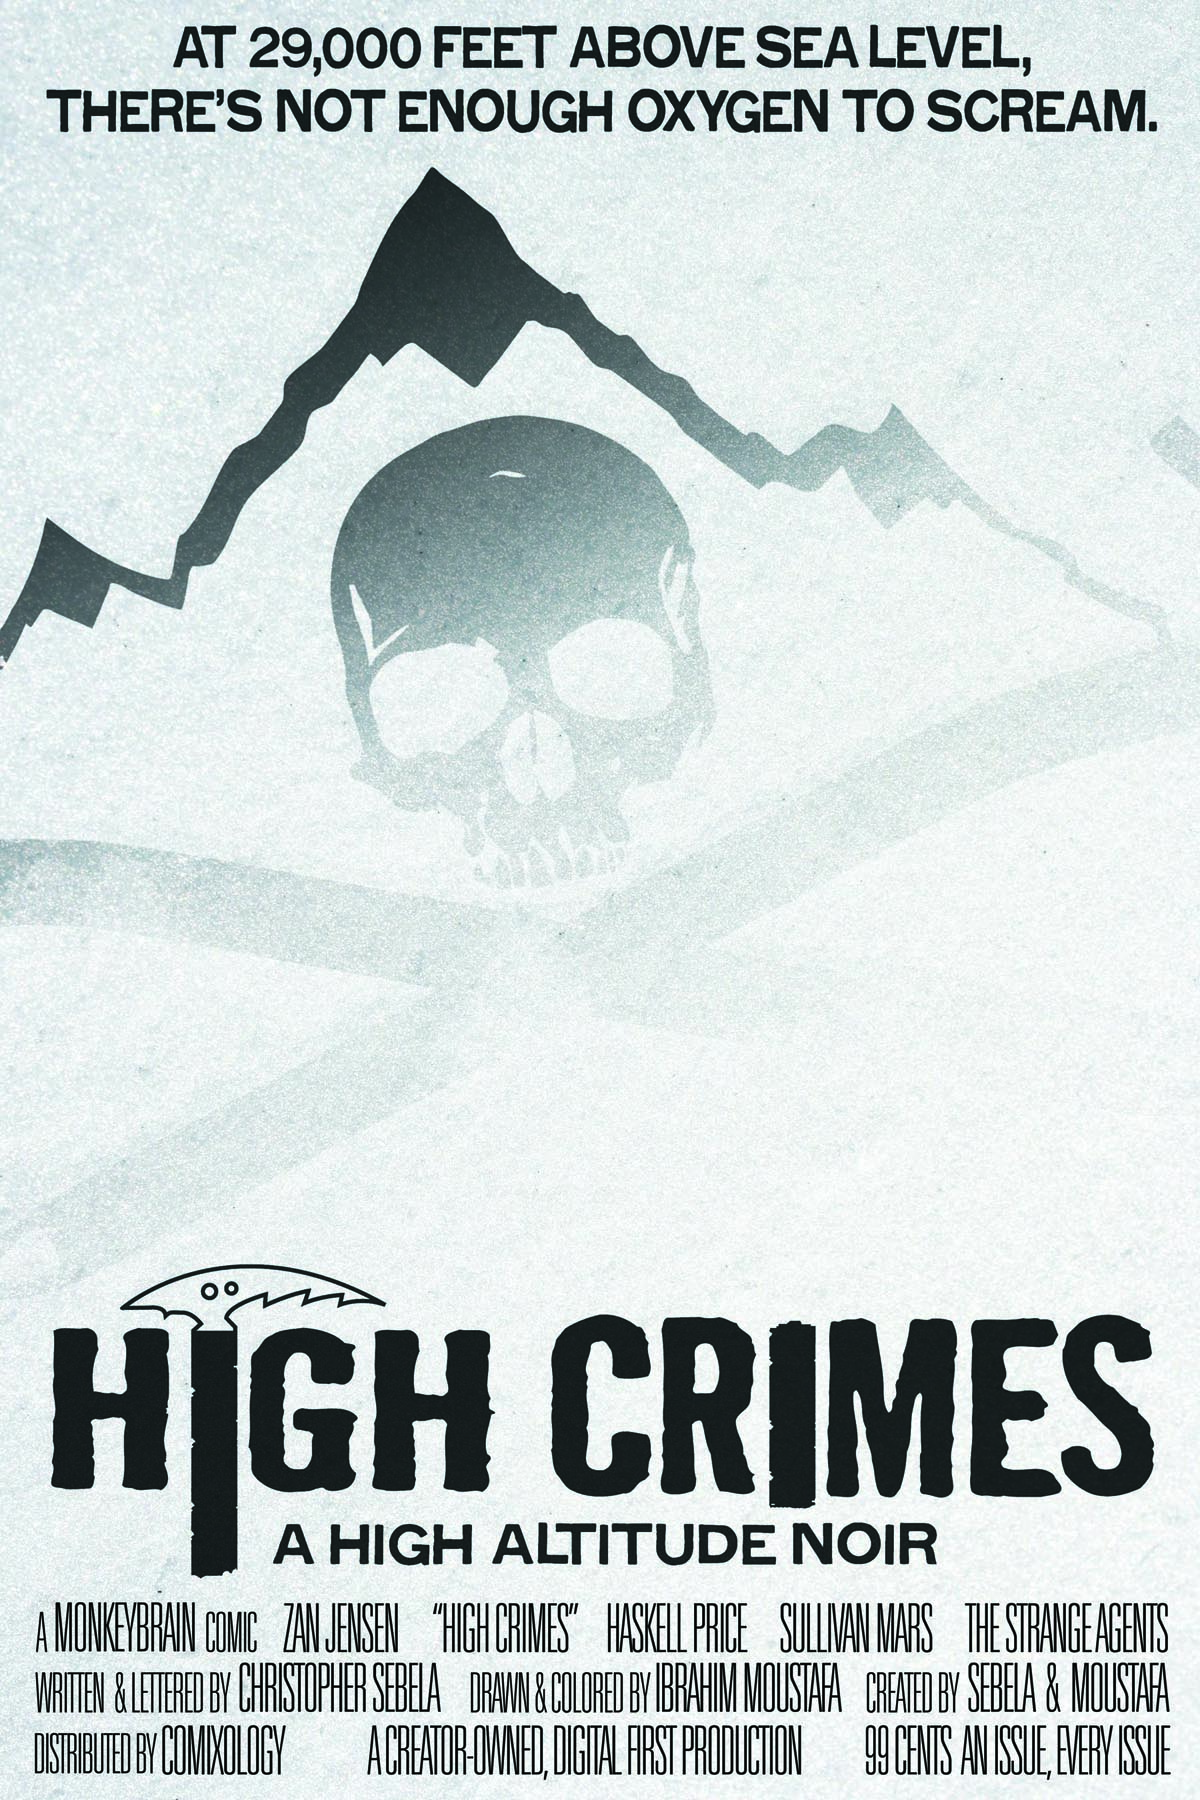 highcrimescomic: Back during the lead-up to issue 1, I got this stupid tagline in my head, a riff on the never-topped ALIEN tagline. It was so dumb, but so perfectly dumb, I could not eject it from my head, and last night, as a way to stress-test Creative Suite on my new machine, I tried to make it happen. High Crimes #3 is coming. Not as fast as we'd like, but greater than we ever expected, with two whole extra pages of story to make up for the wait. Updates when update-able. I can always justify taking a joke all the way to the finish line.